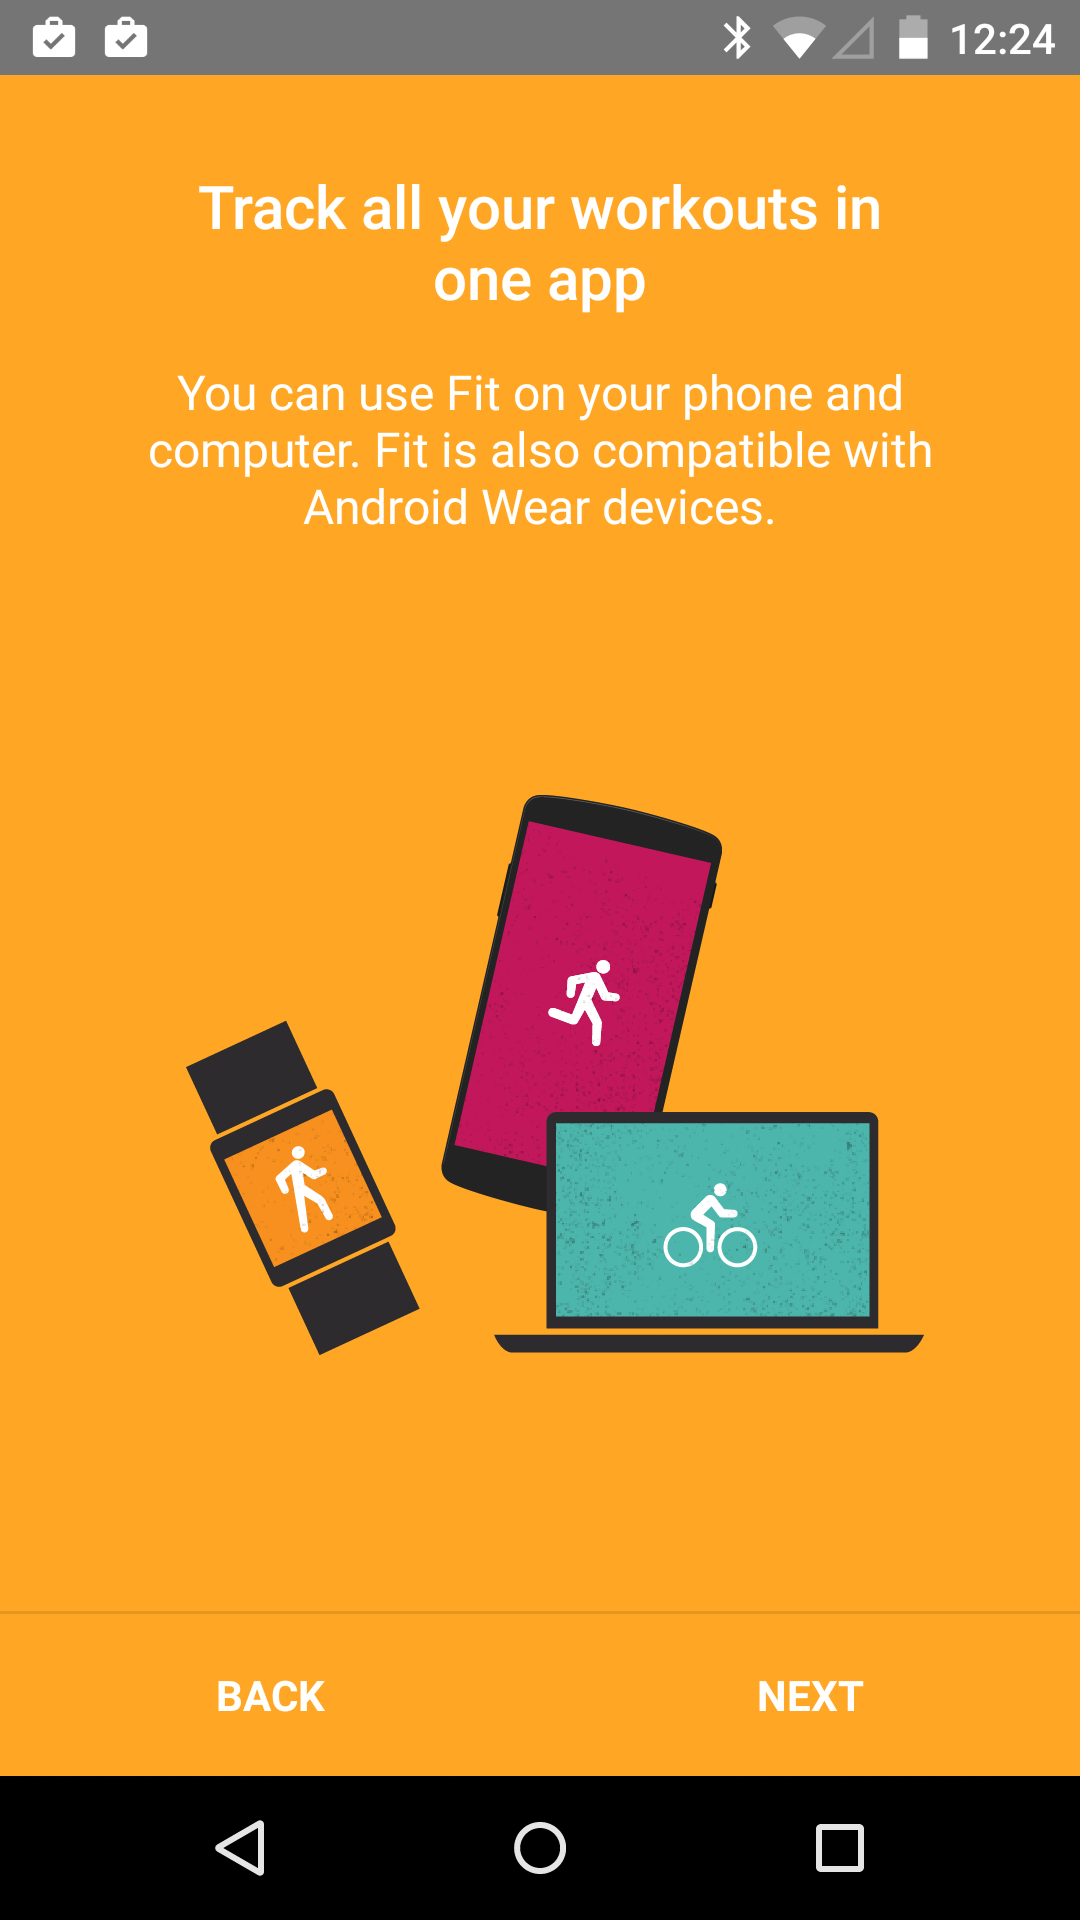 Google Fit App Now Available For Android Devices | TechCrunch